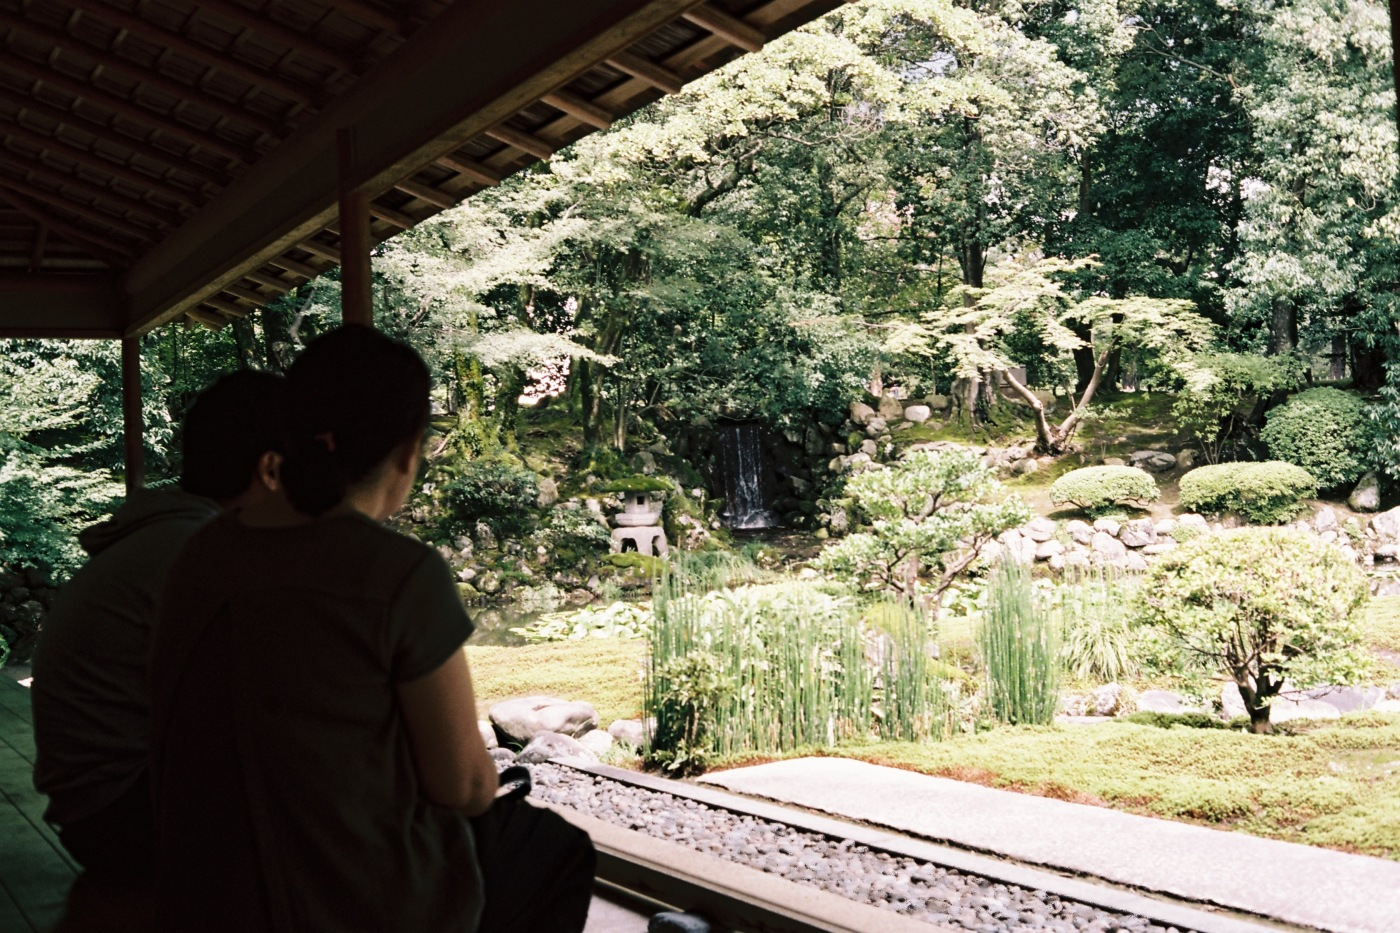 Shiguretei Tea House - shot with Canonet QL17 on Portra 160 film